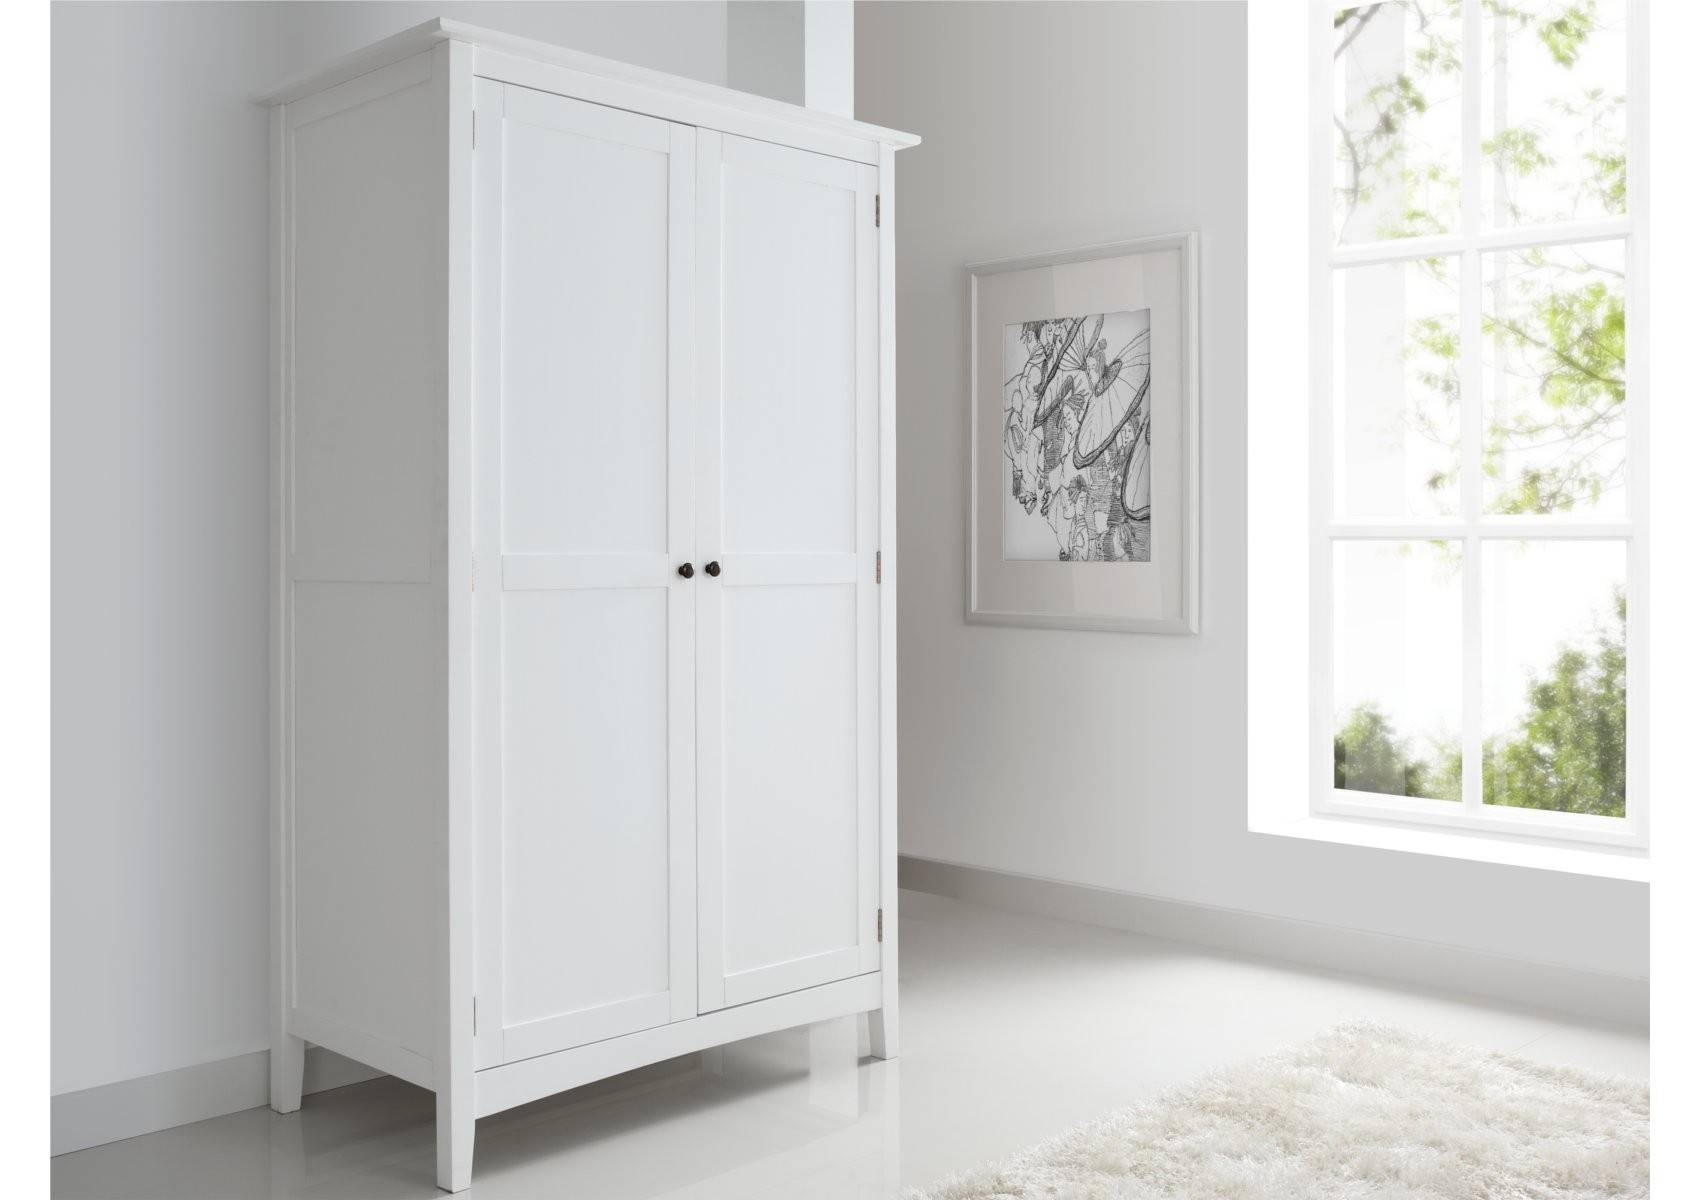 Wardrobes, White Wardrobes, Wooden Wardrobes | Time4Sleep pertaining to White Wardrobes With Drawers (Image 14 of 15)